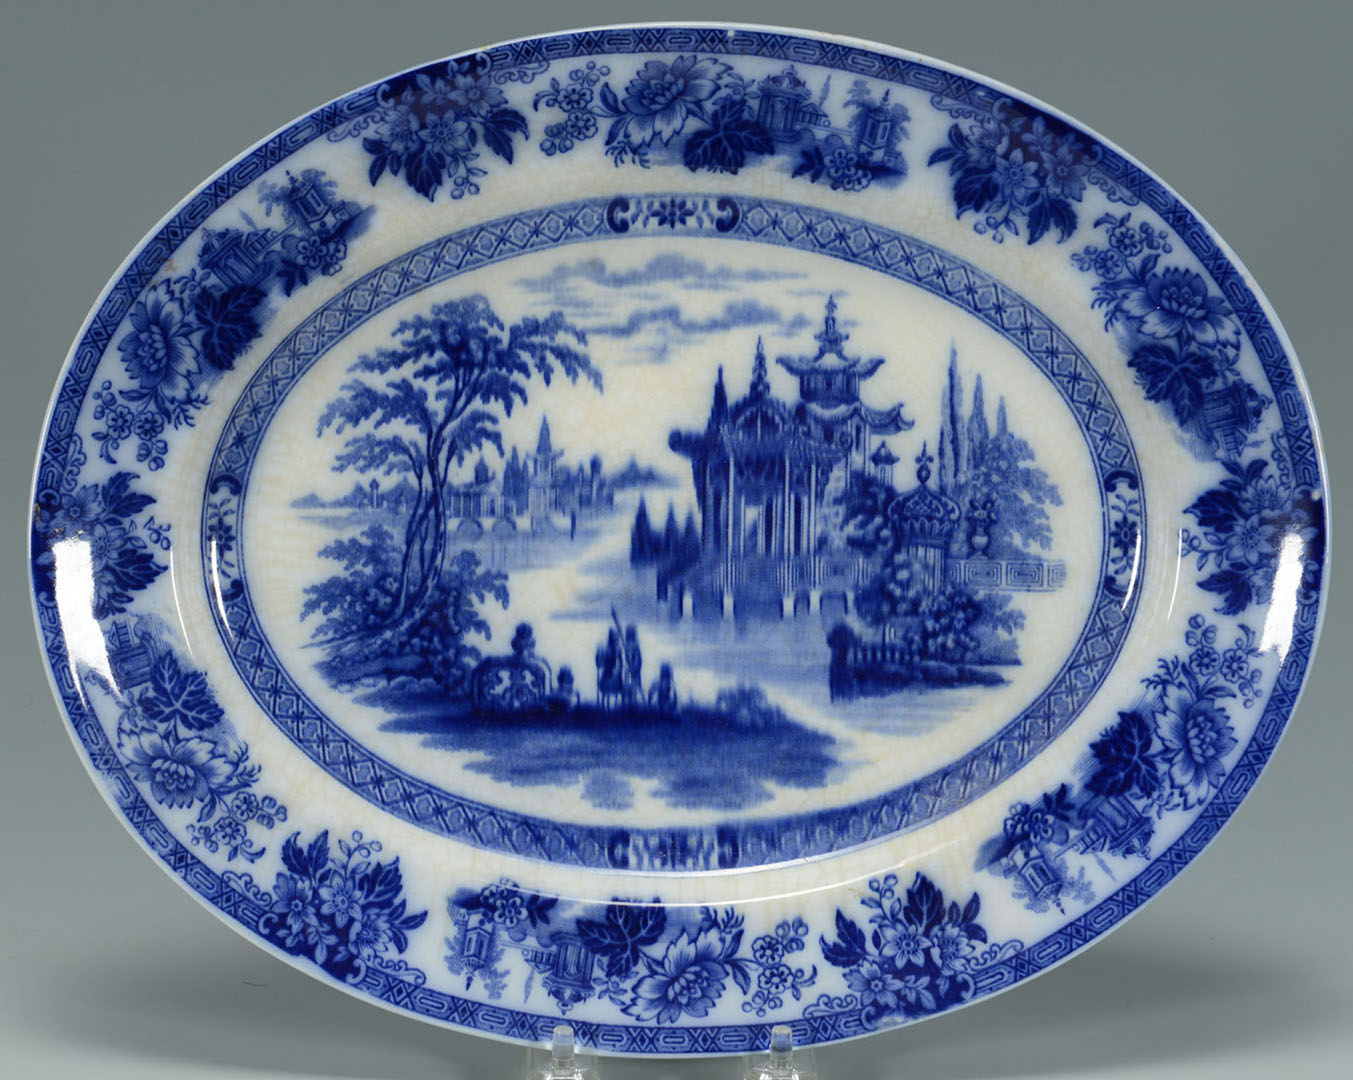 Lot 2872334: 3 Ceramic Items, Flow Blue & Tobacco Leaf